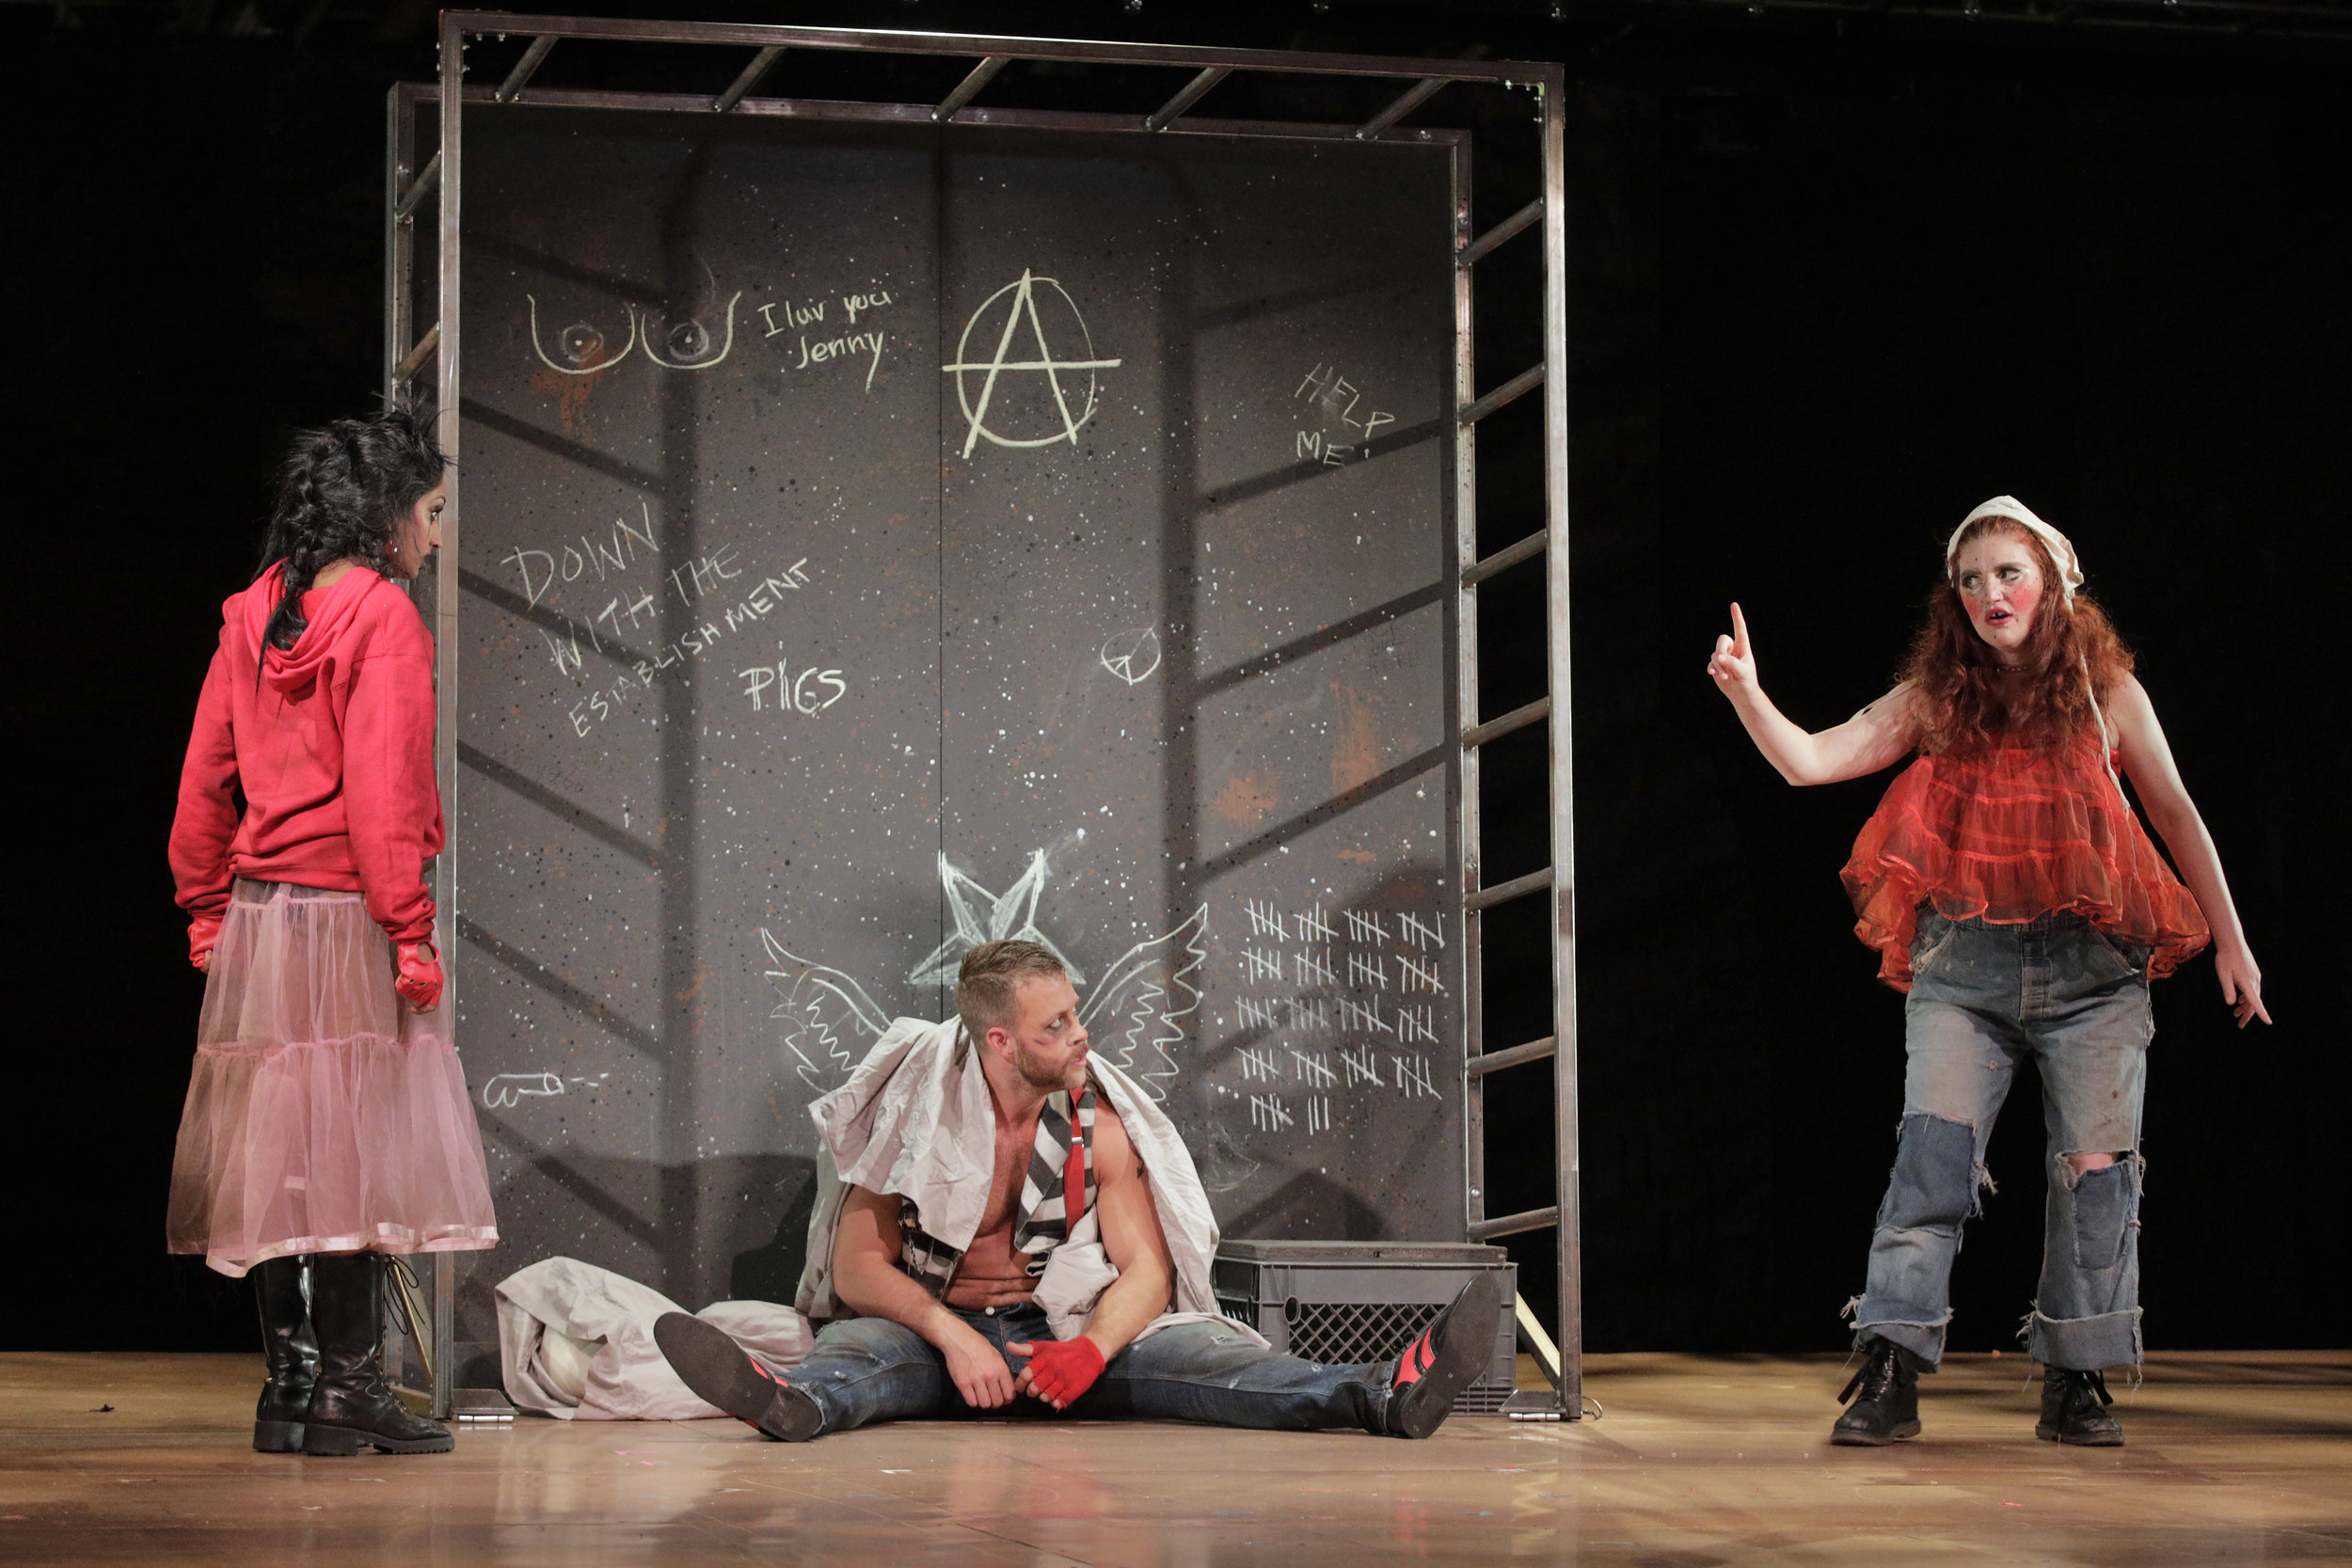 Polly Peachum (Maya Kherani), Macheath (Derek Chester), and Lucy Brown (Erin O'Meally) in West Edge Opera's production of The Threepenny Opera